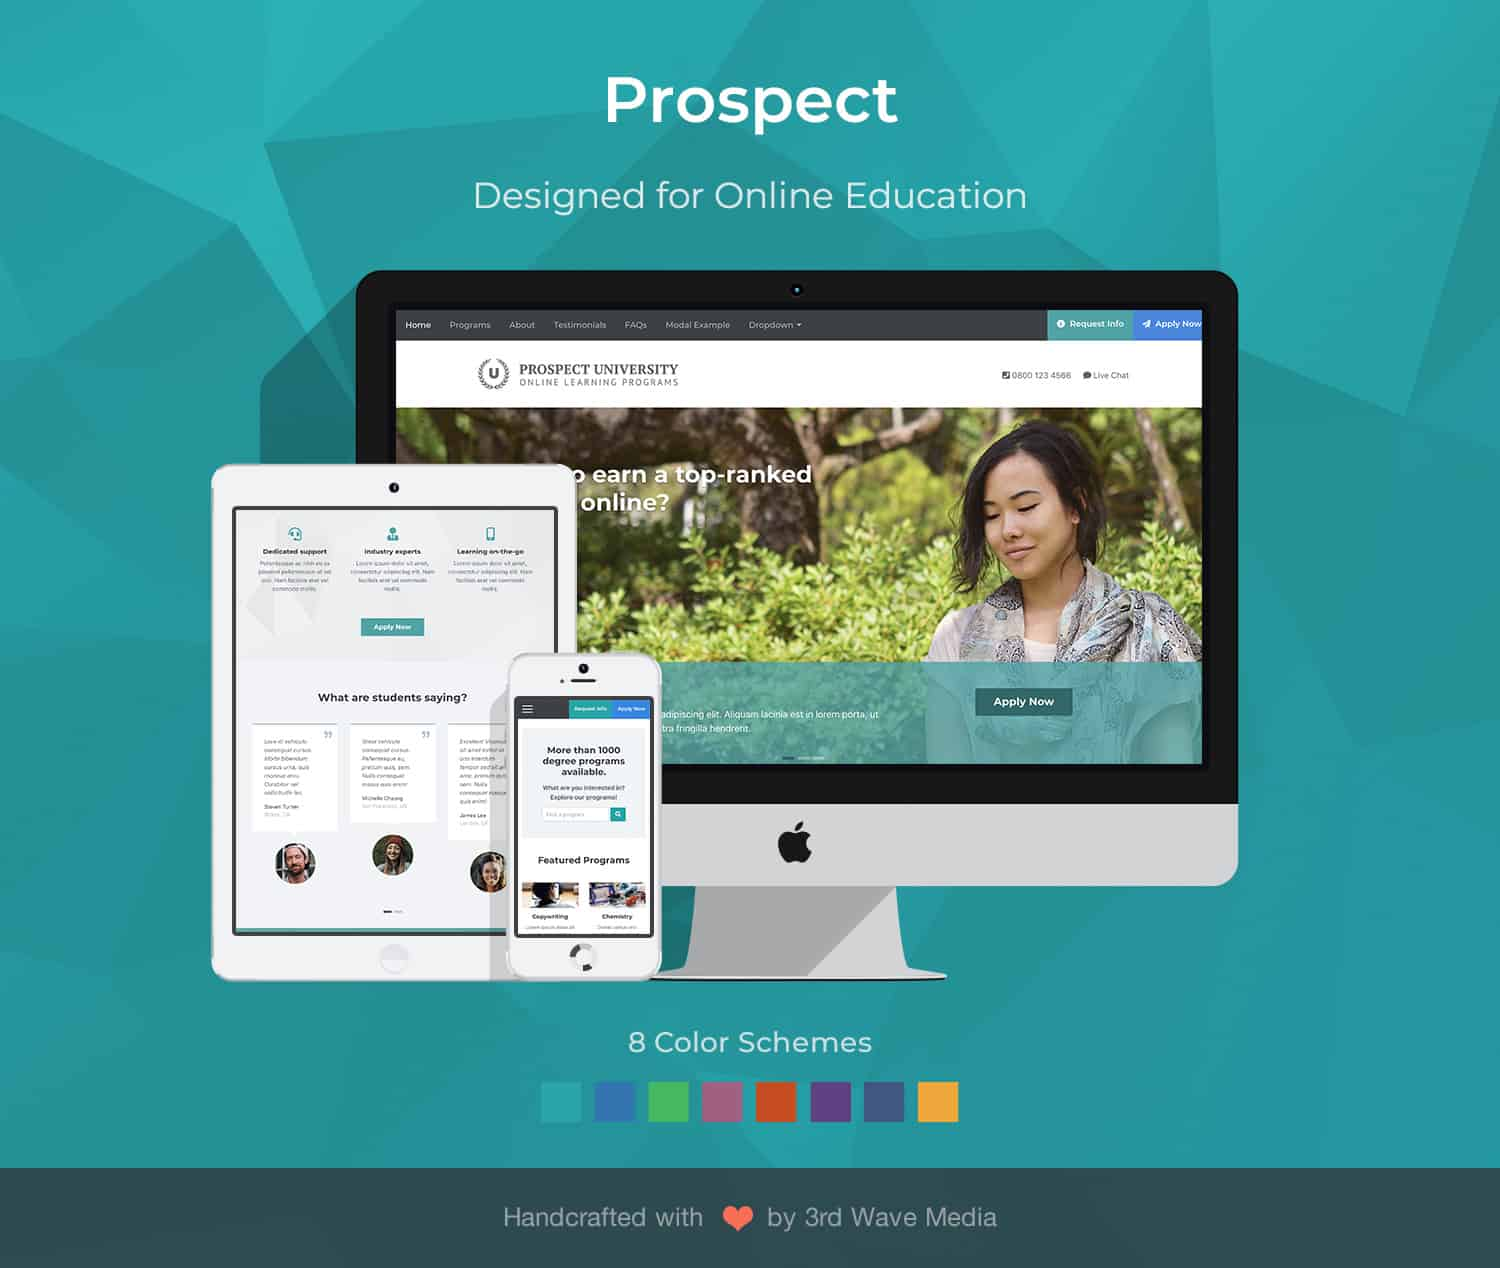 https://themes.3rdwavemedia.com/wp-content/uploads/2020/10/Prospect-Bootstrap-Education-Landing-Page-Template.jpg